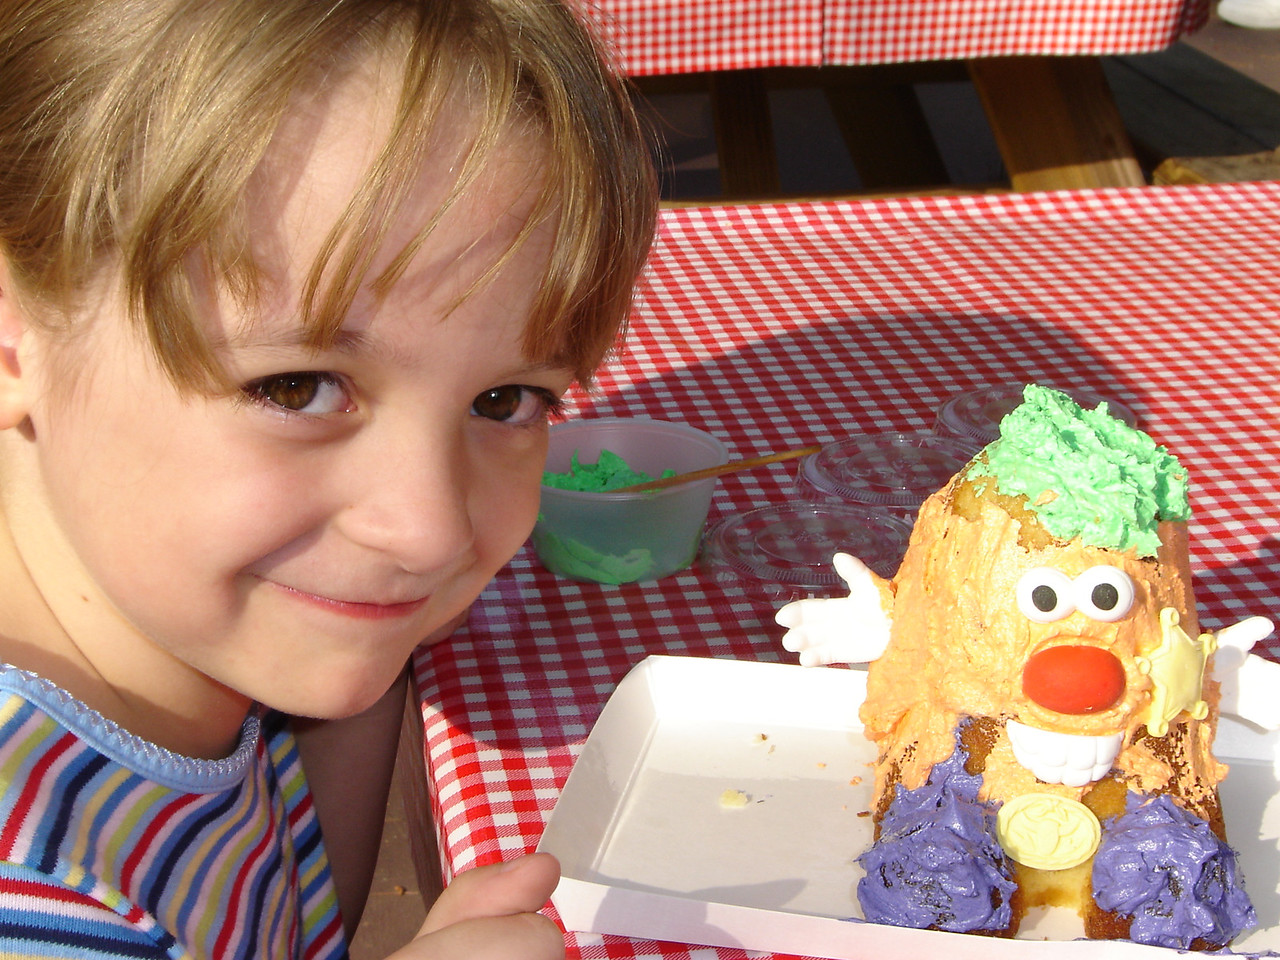 For seven dollars they had a cake that you could decorate to your hearts content. I think it closely resembled Mr Potato Head.